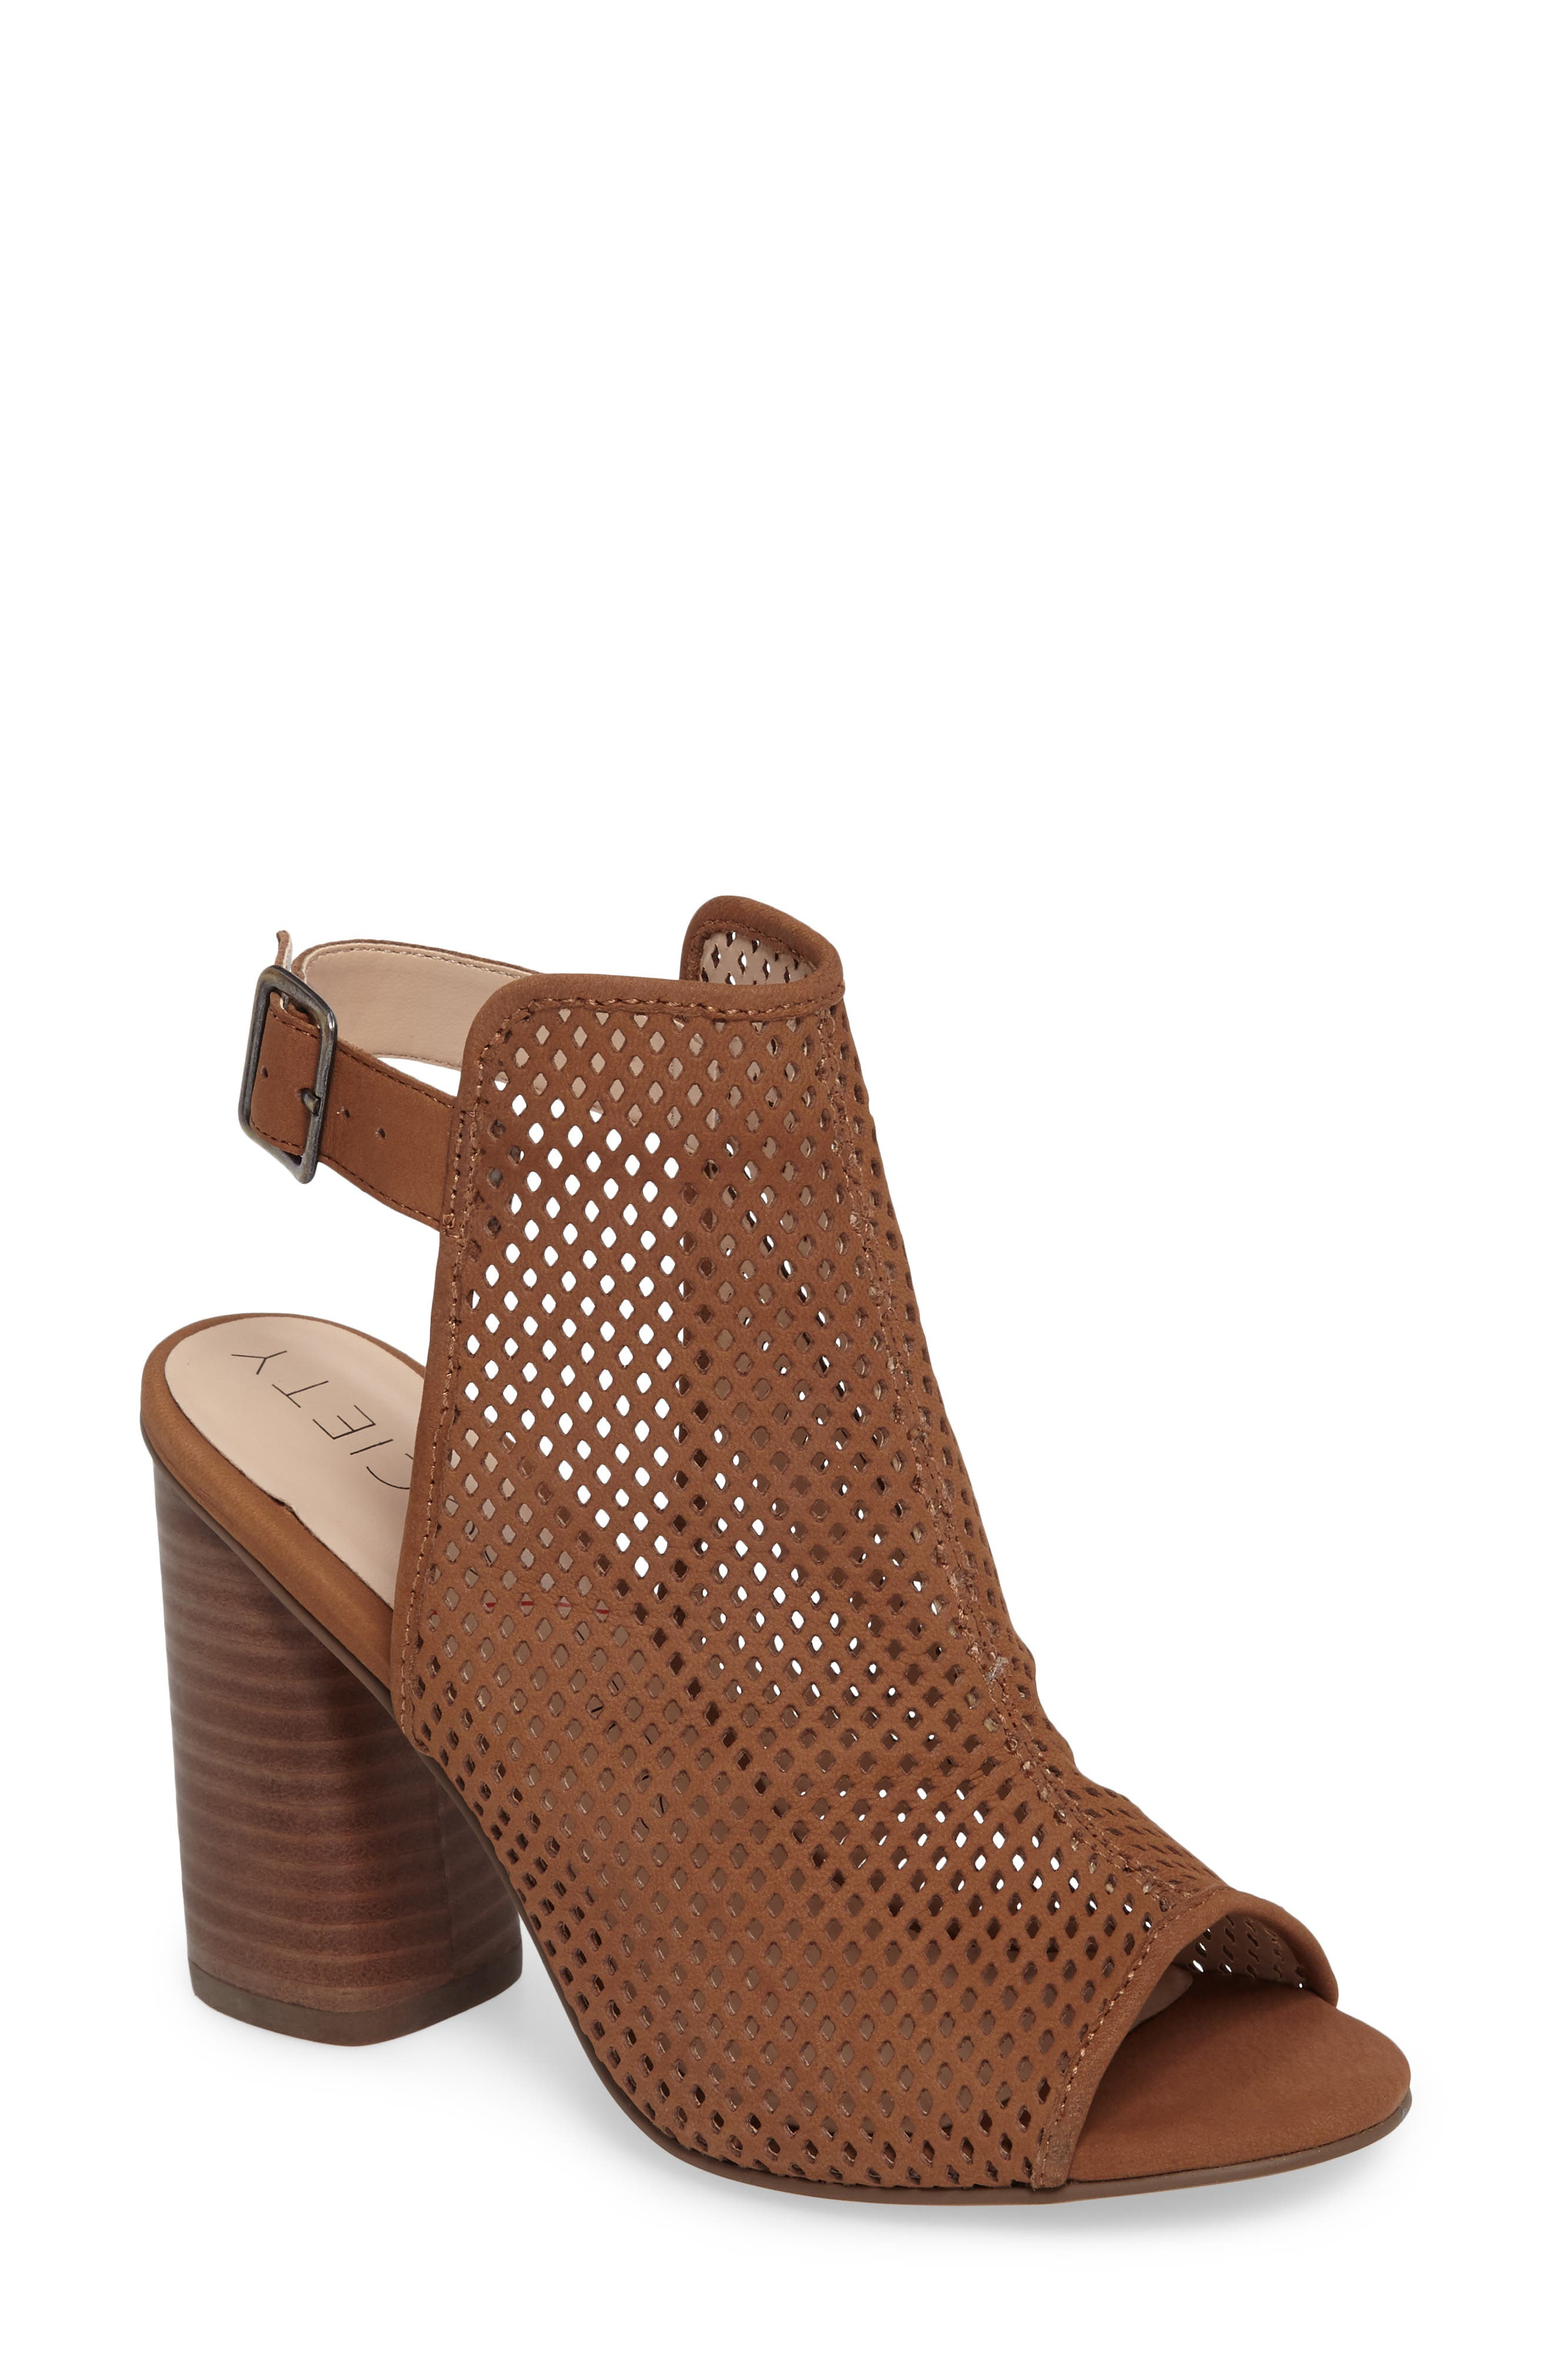 Main Image - Sole Society Bombay Perforated Sandal (Women)